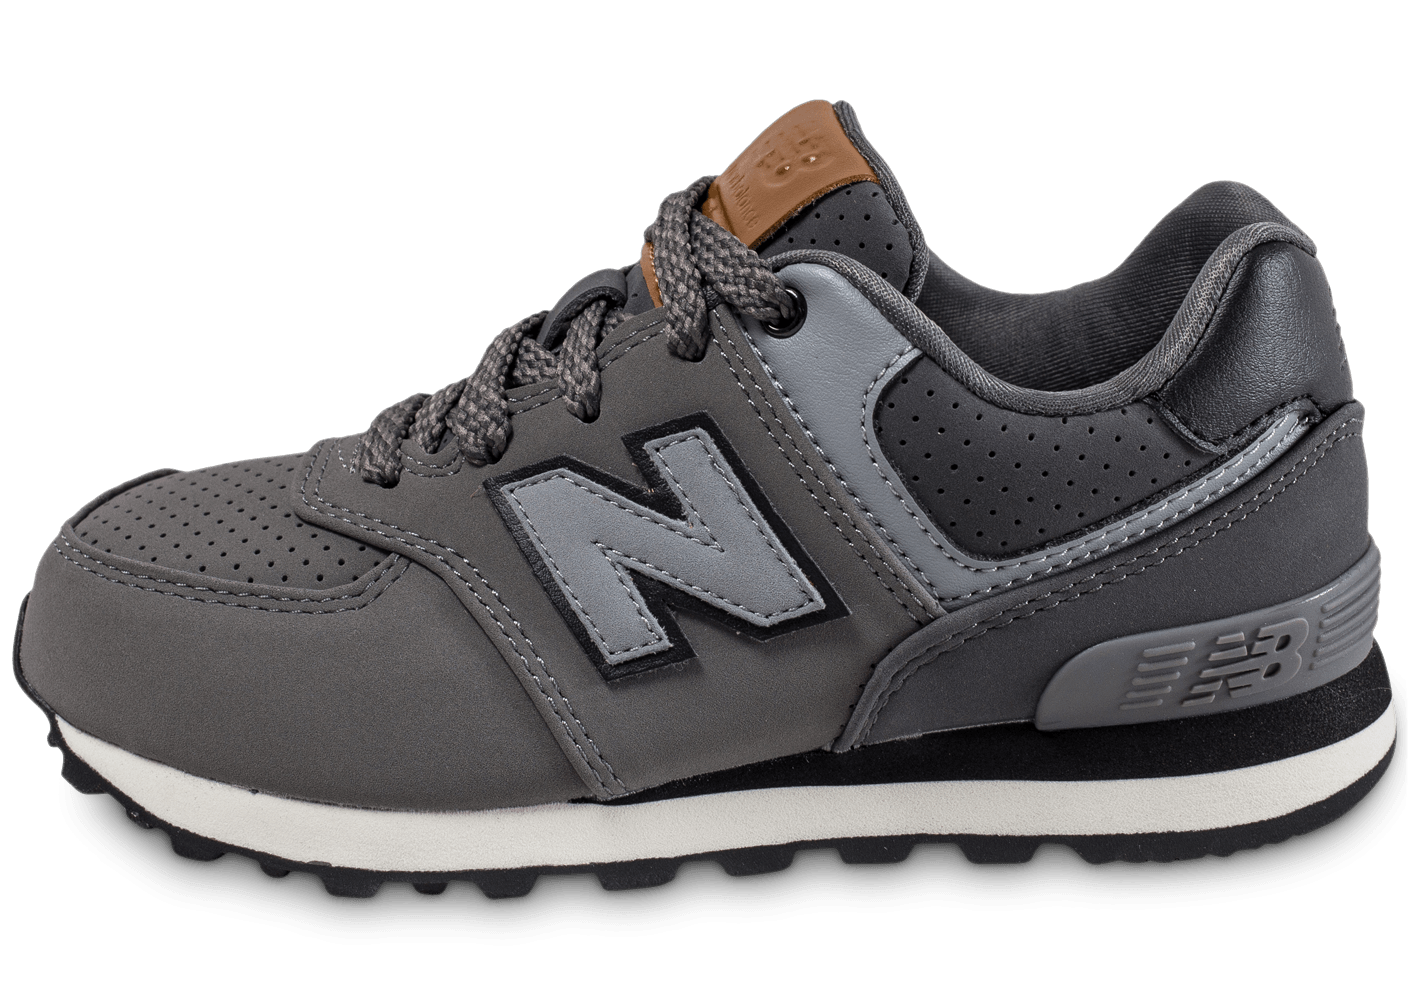 New Balance KL574 Enfant grise - Chaussures Black Friday - Chausport